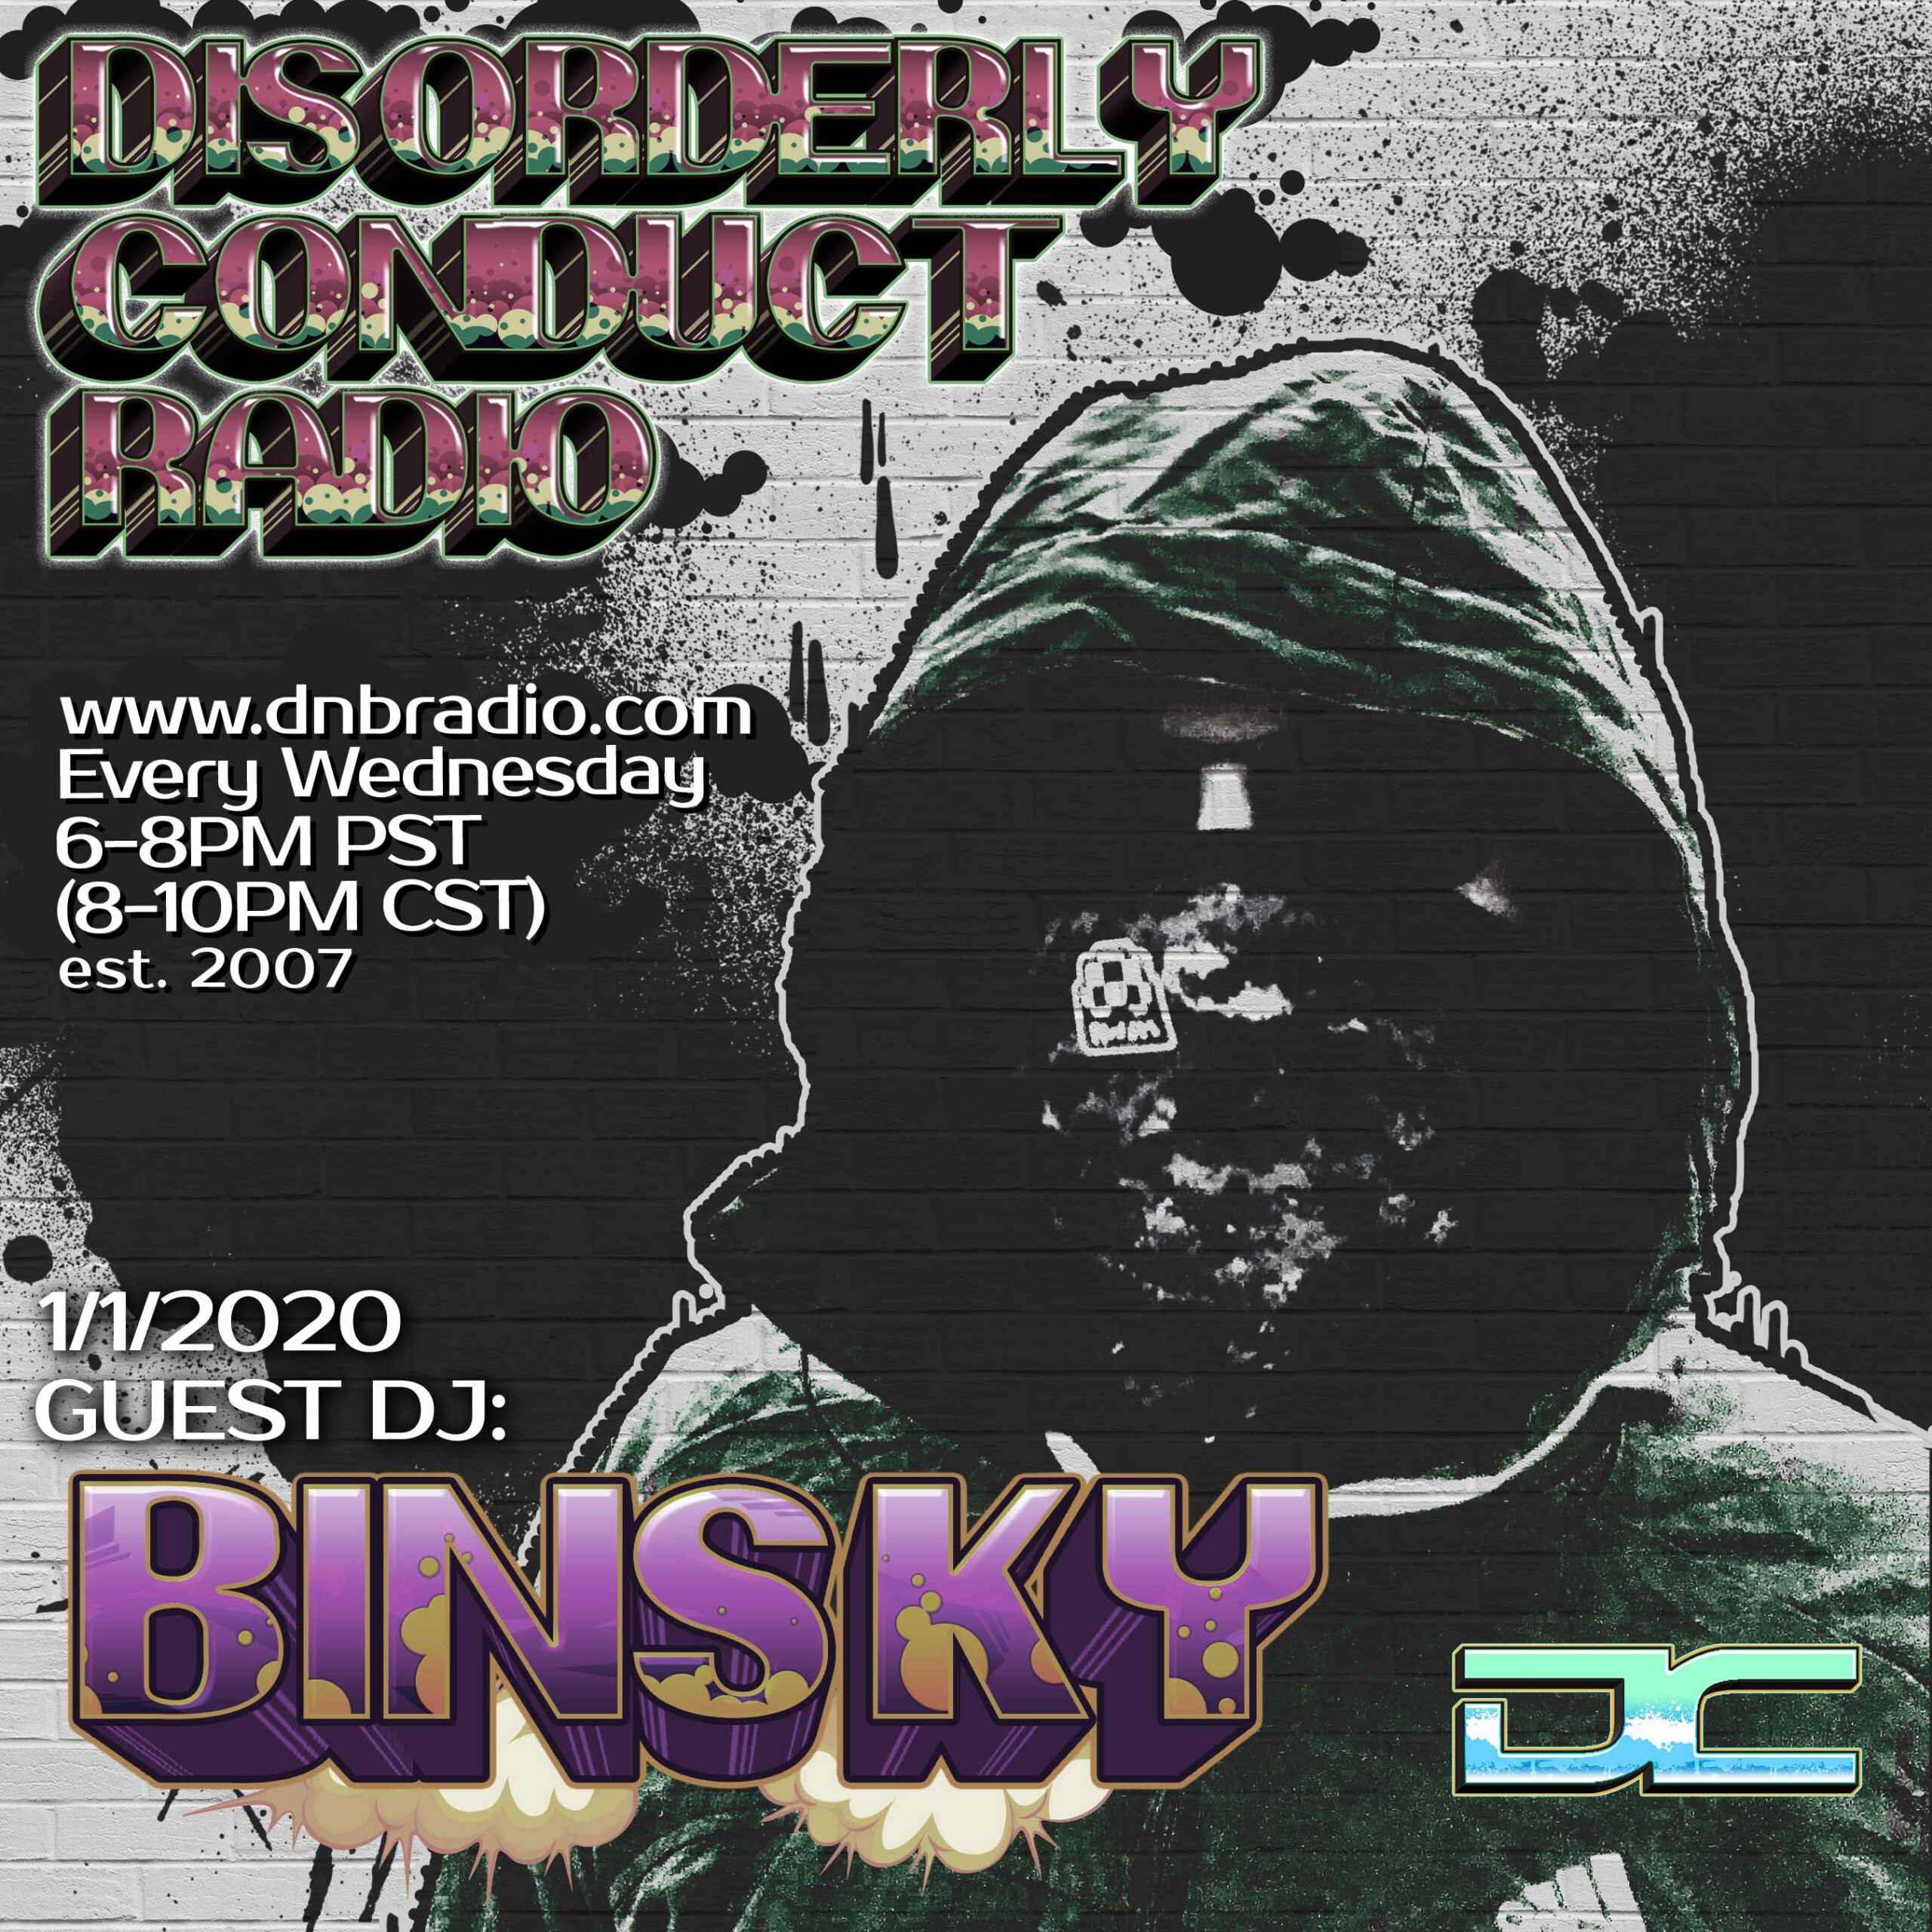 Mr. Solve and Binsky – Disorderly Conduct Radio 010120